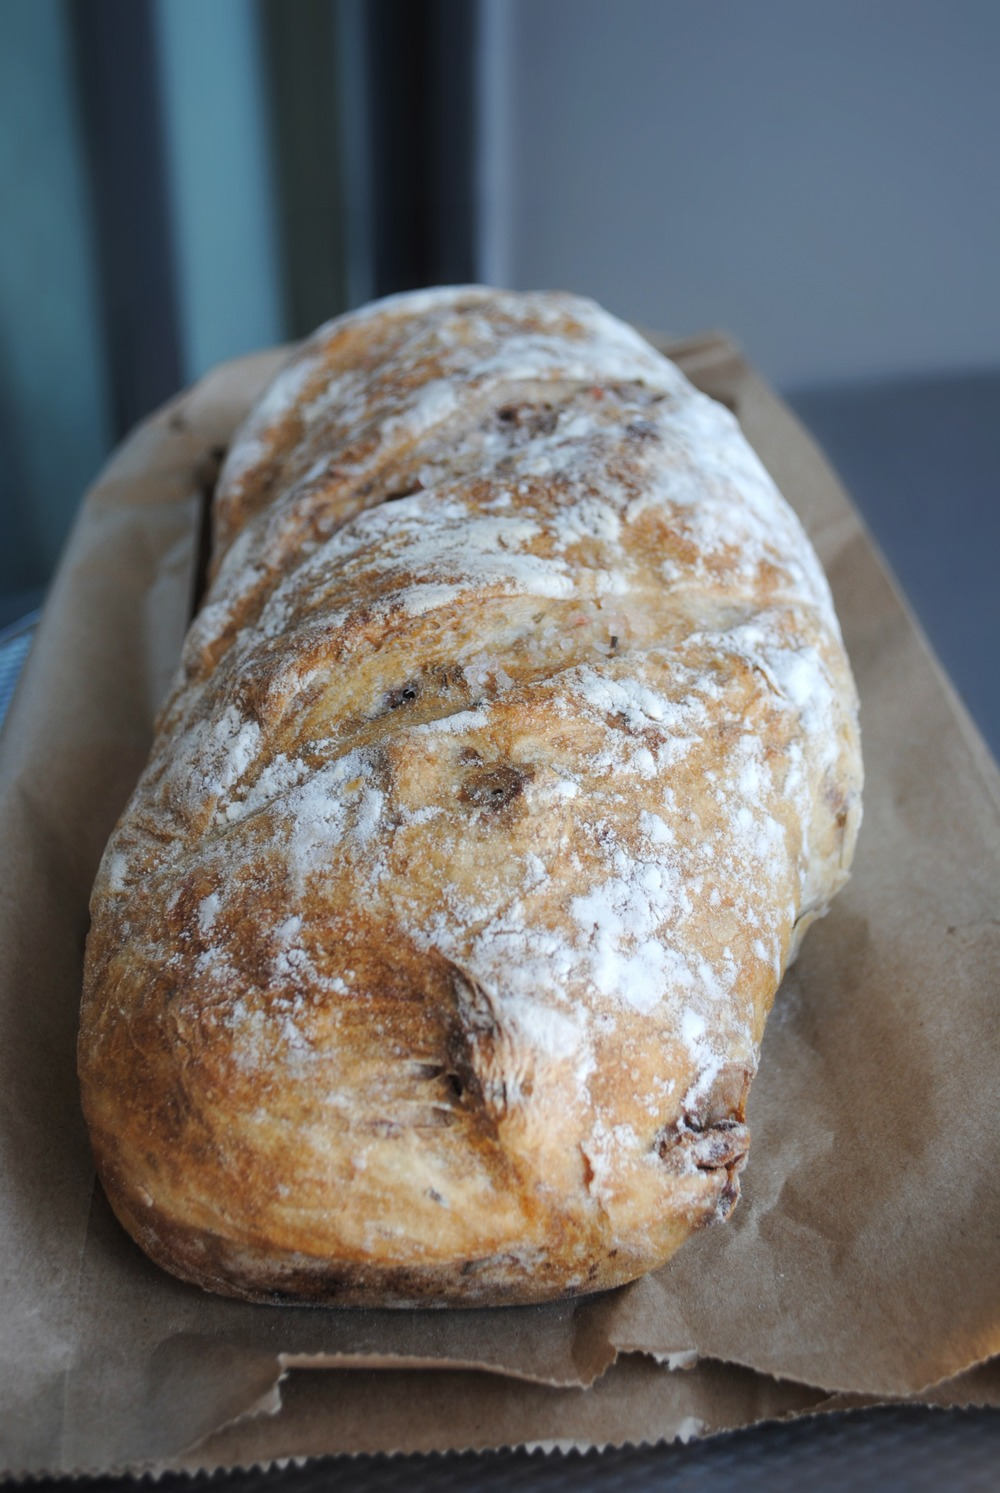 Walnut, sea salt and rosemary bread.